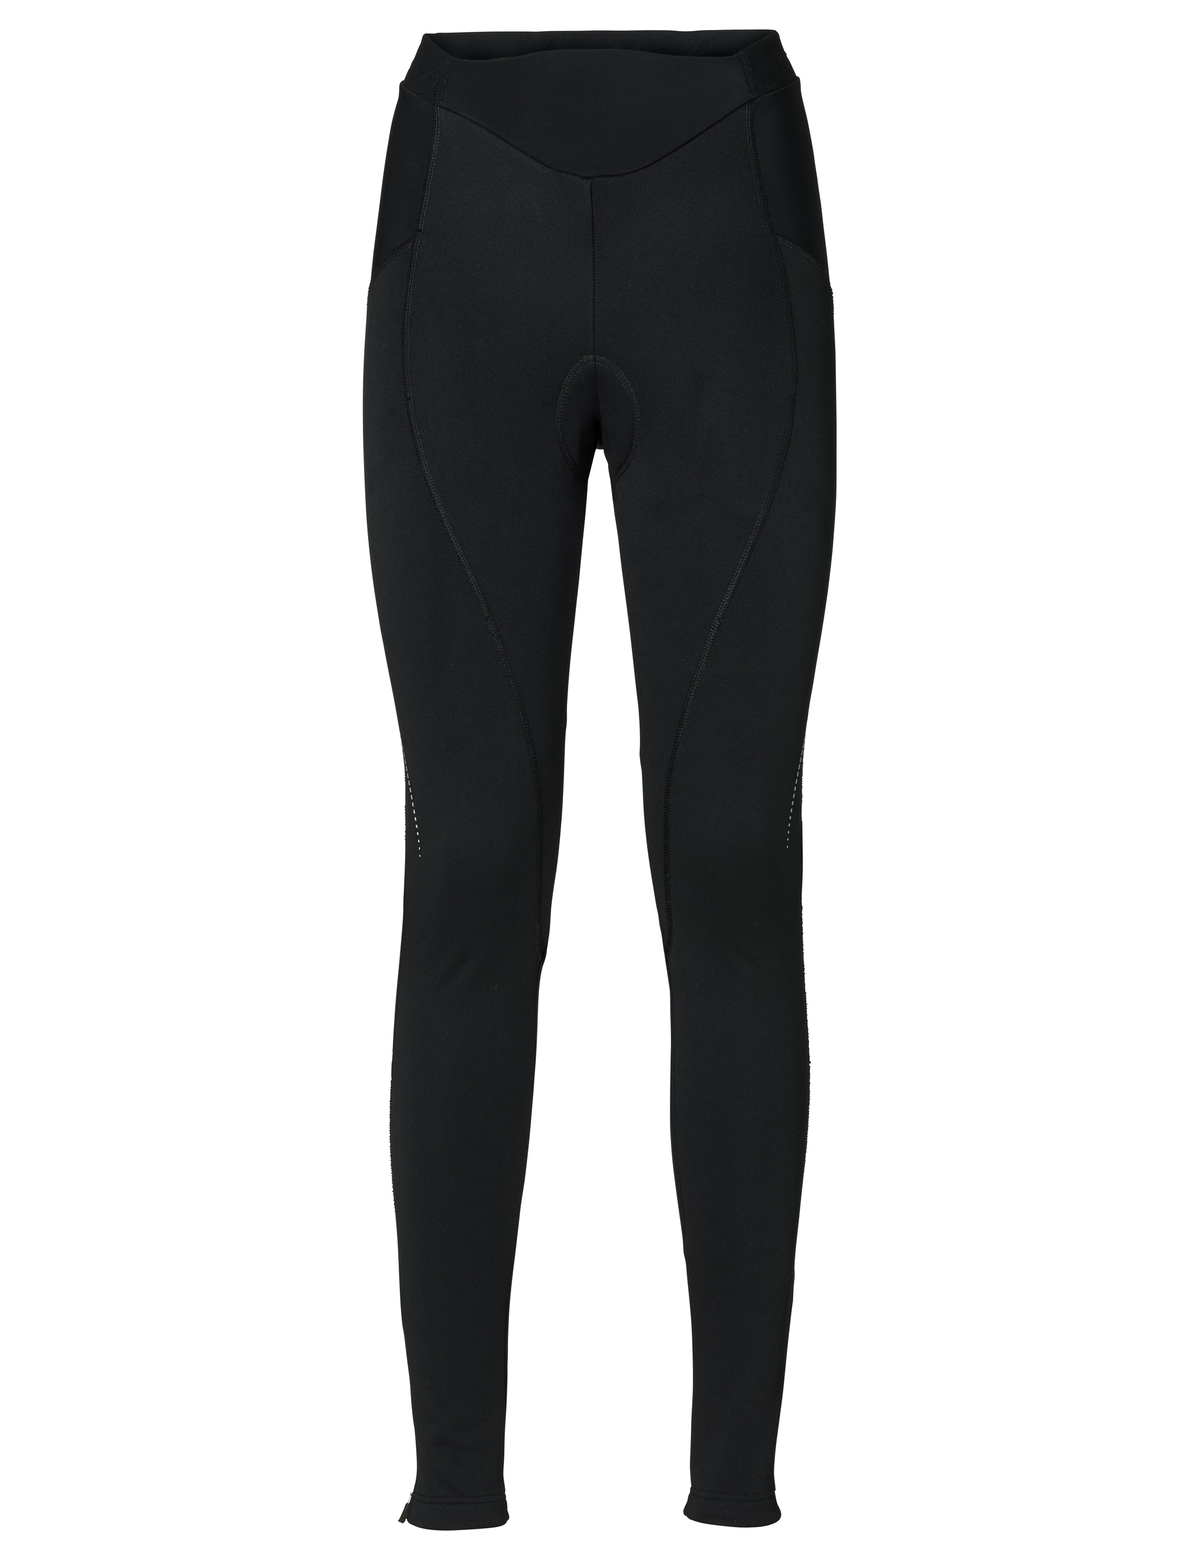 VAUDE Women´s Advanced Warm Pants II black Größe 34 - schneider-sports